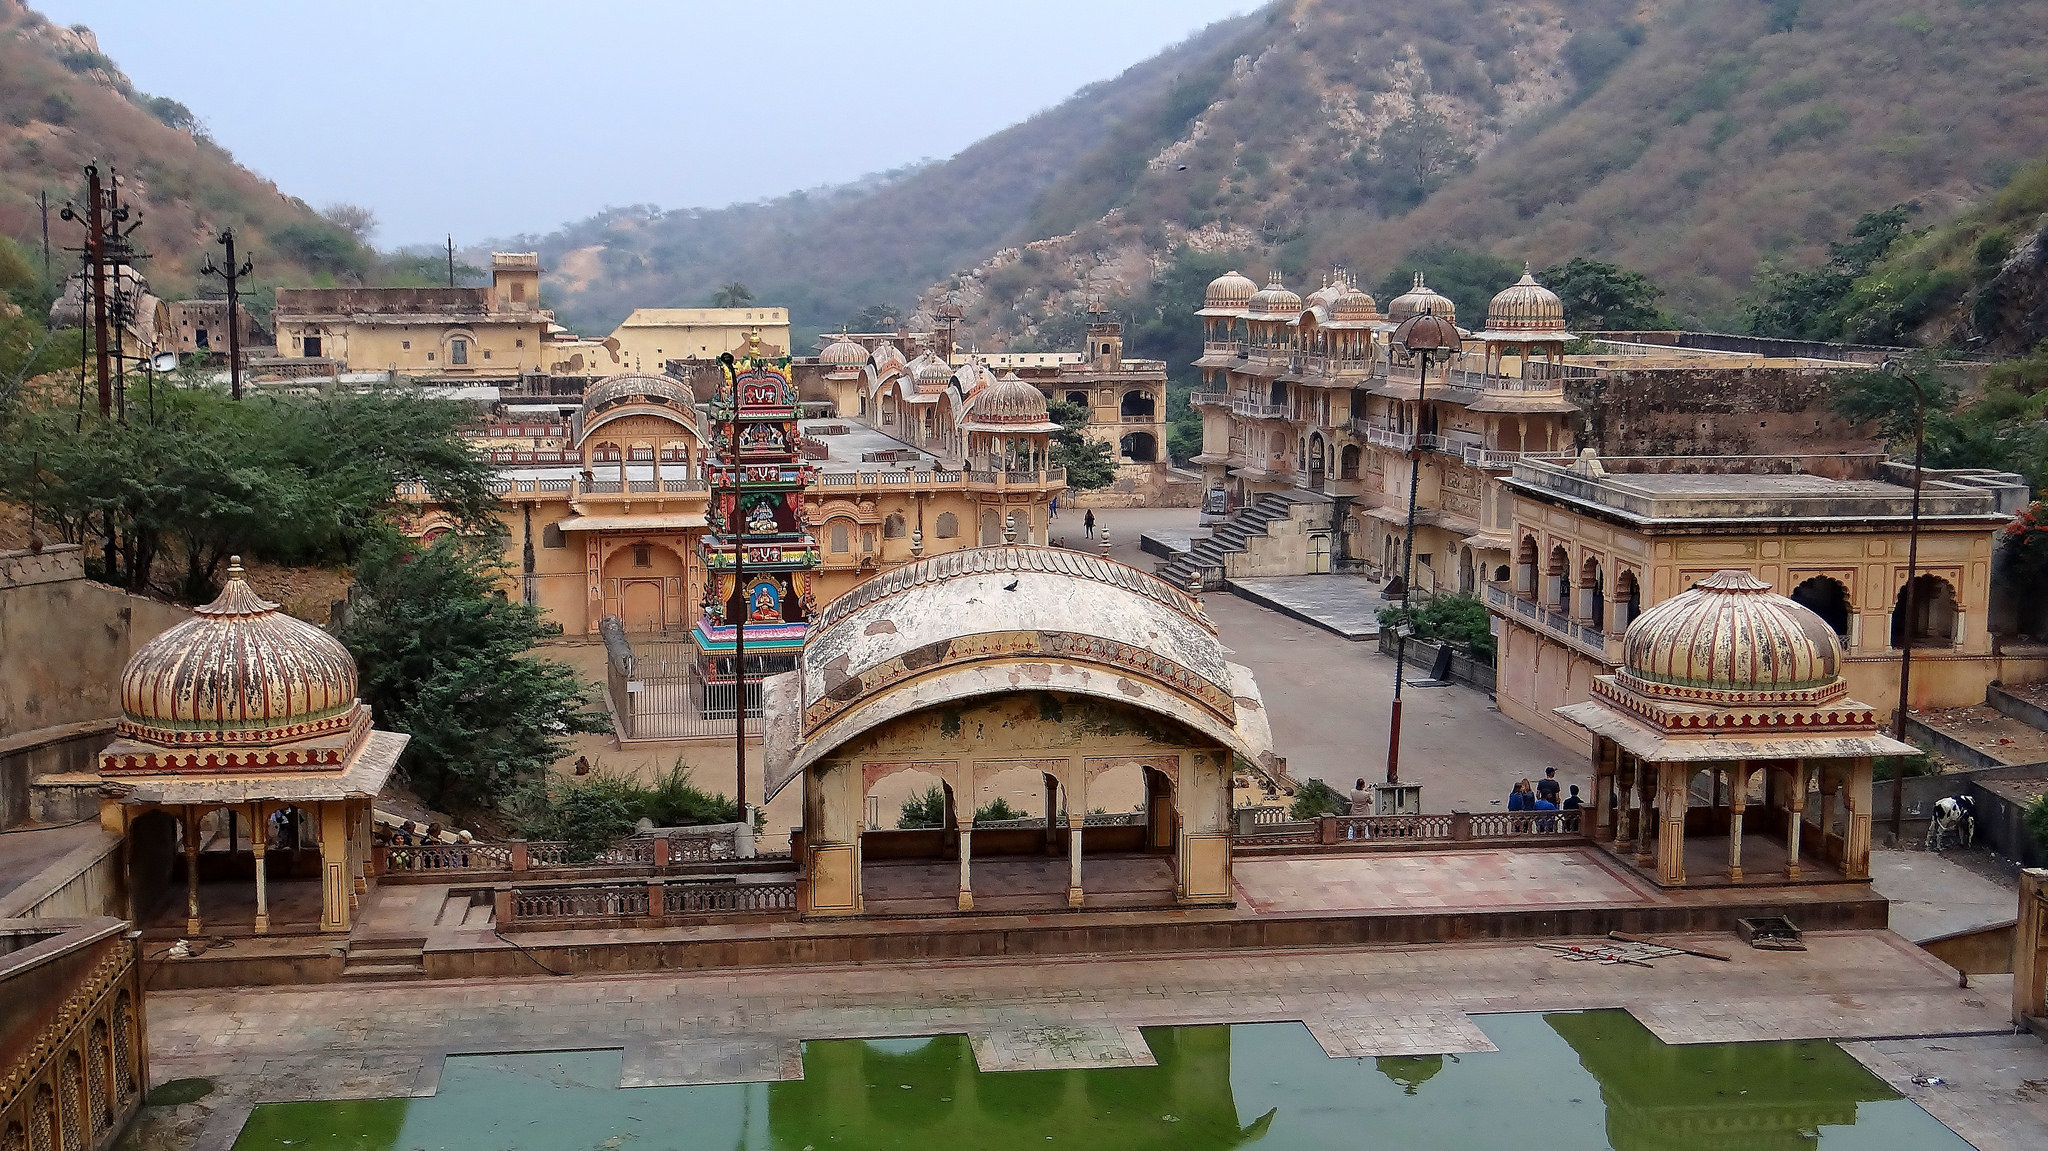 Galta Ji Monkey Temple: Weekend getaways India